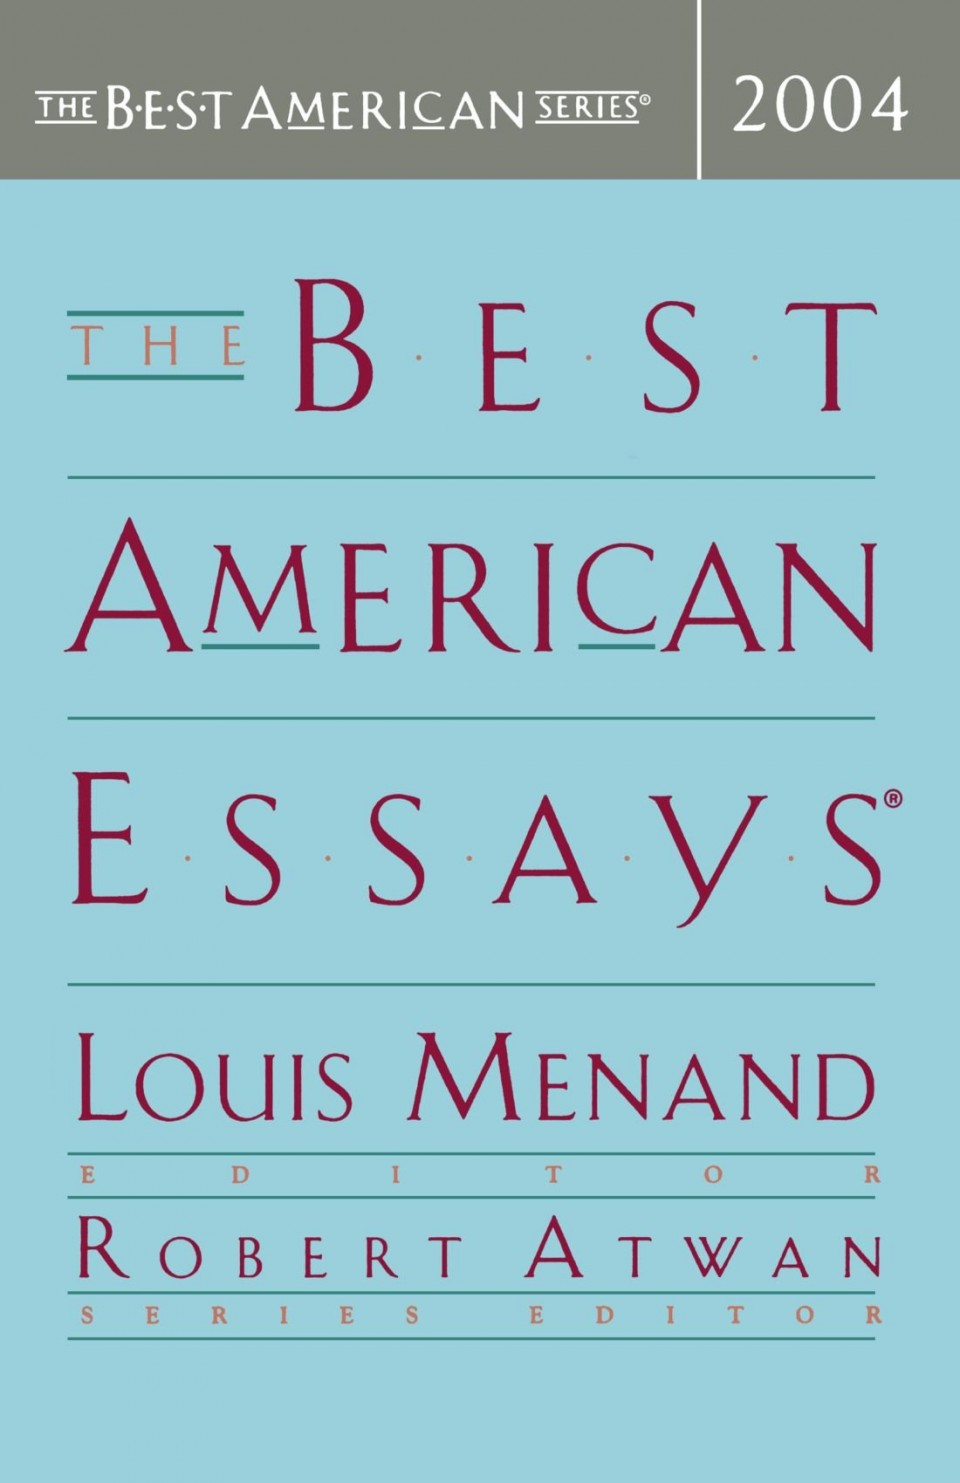 015 Essay Example The Best American Essays Wonderful 2018 Pdf 2017 Table Of Contents 2015 Free 960